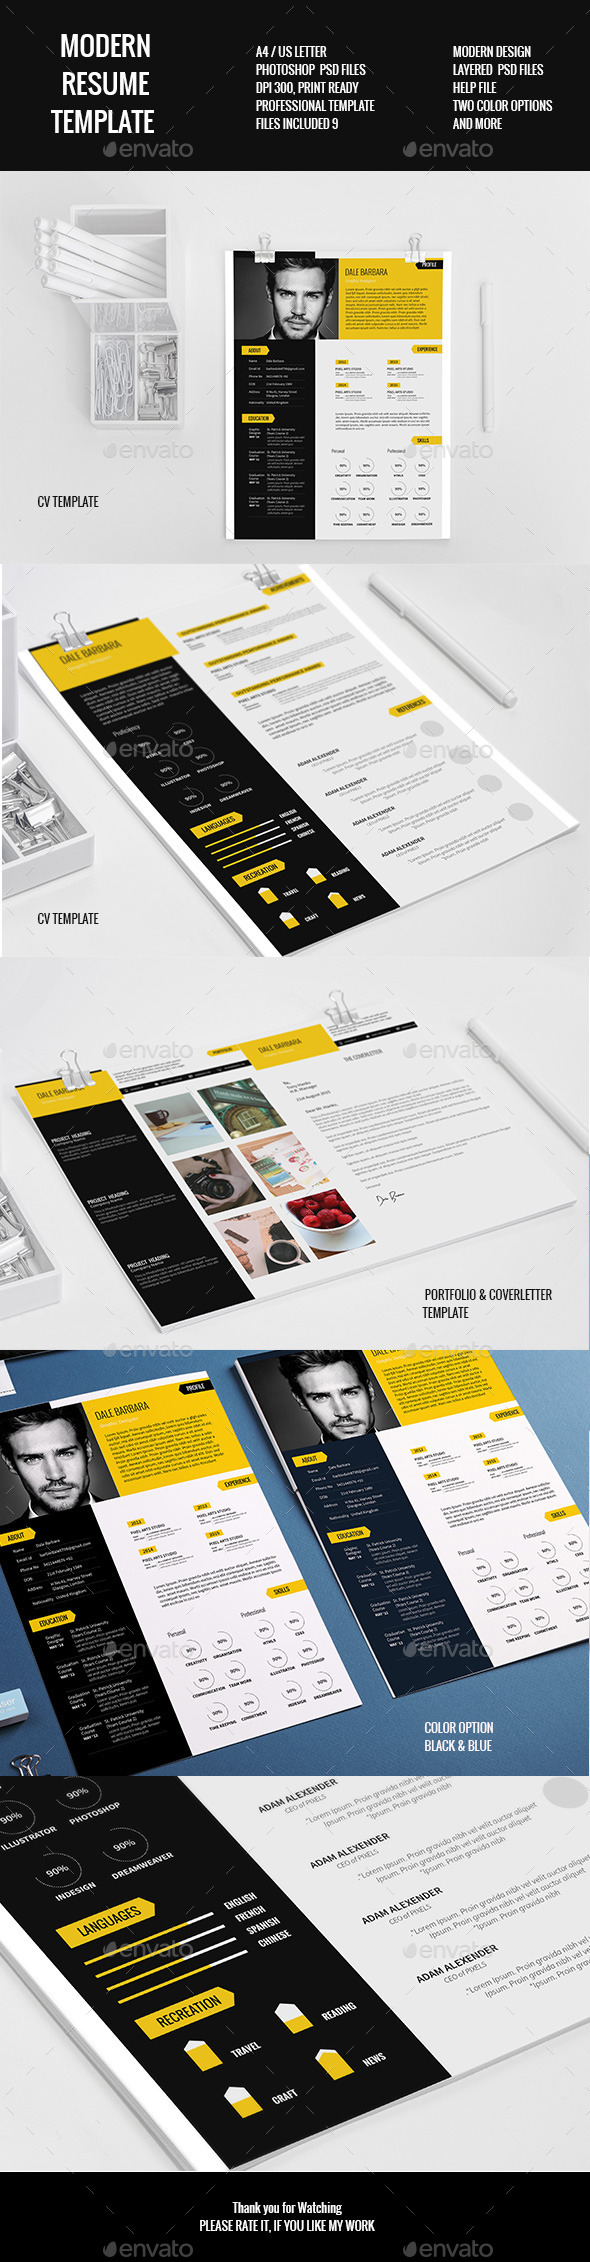 Modern Resume Set Template - Resumes Stationery